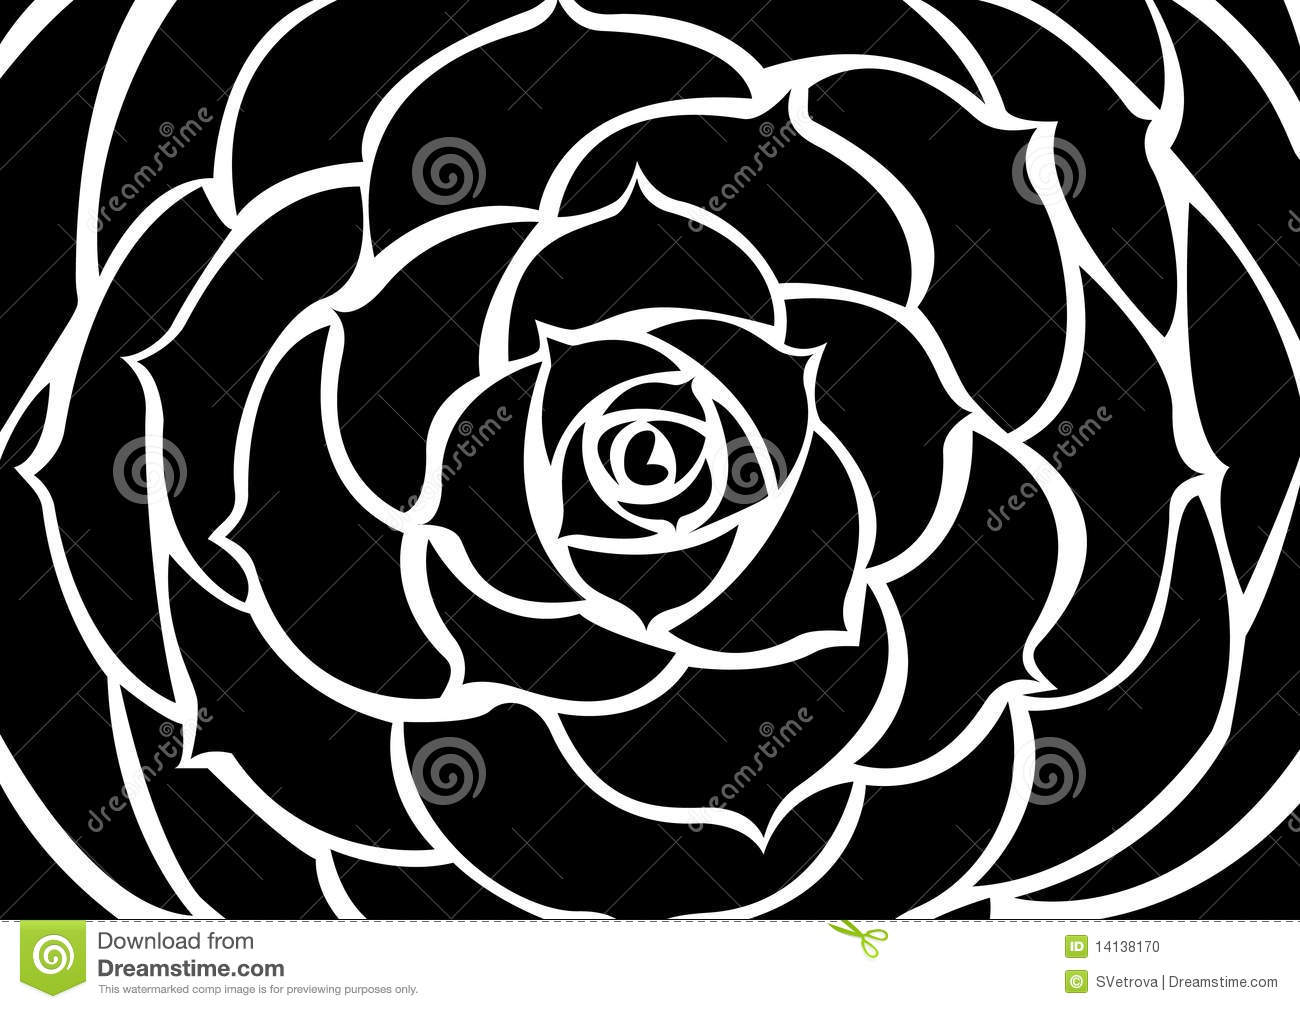 Black Flower Stock Photo - Image: 14138170